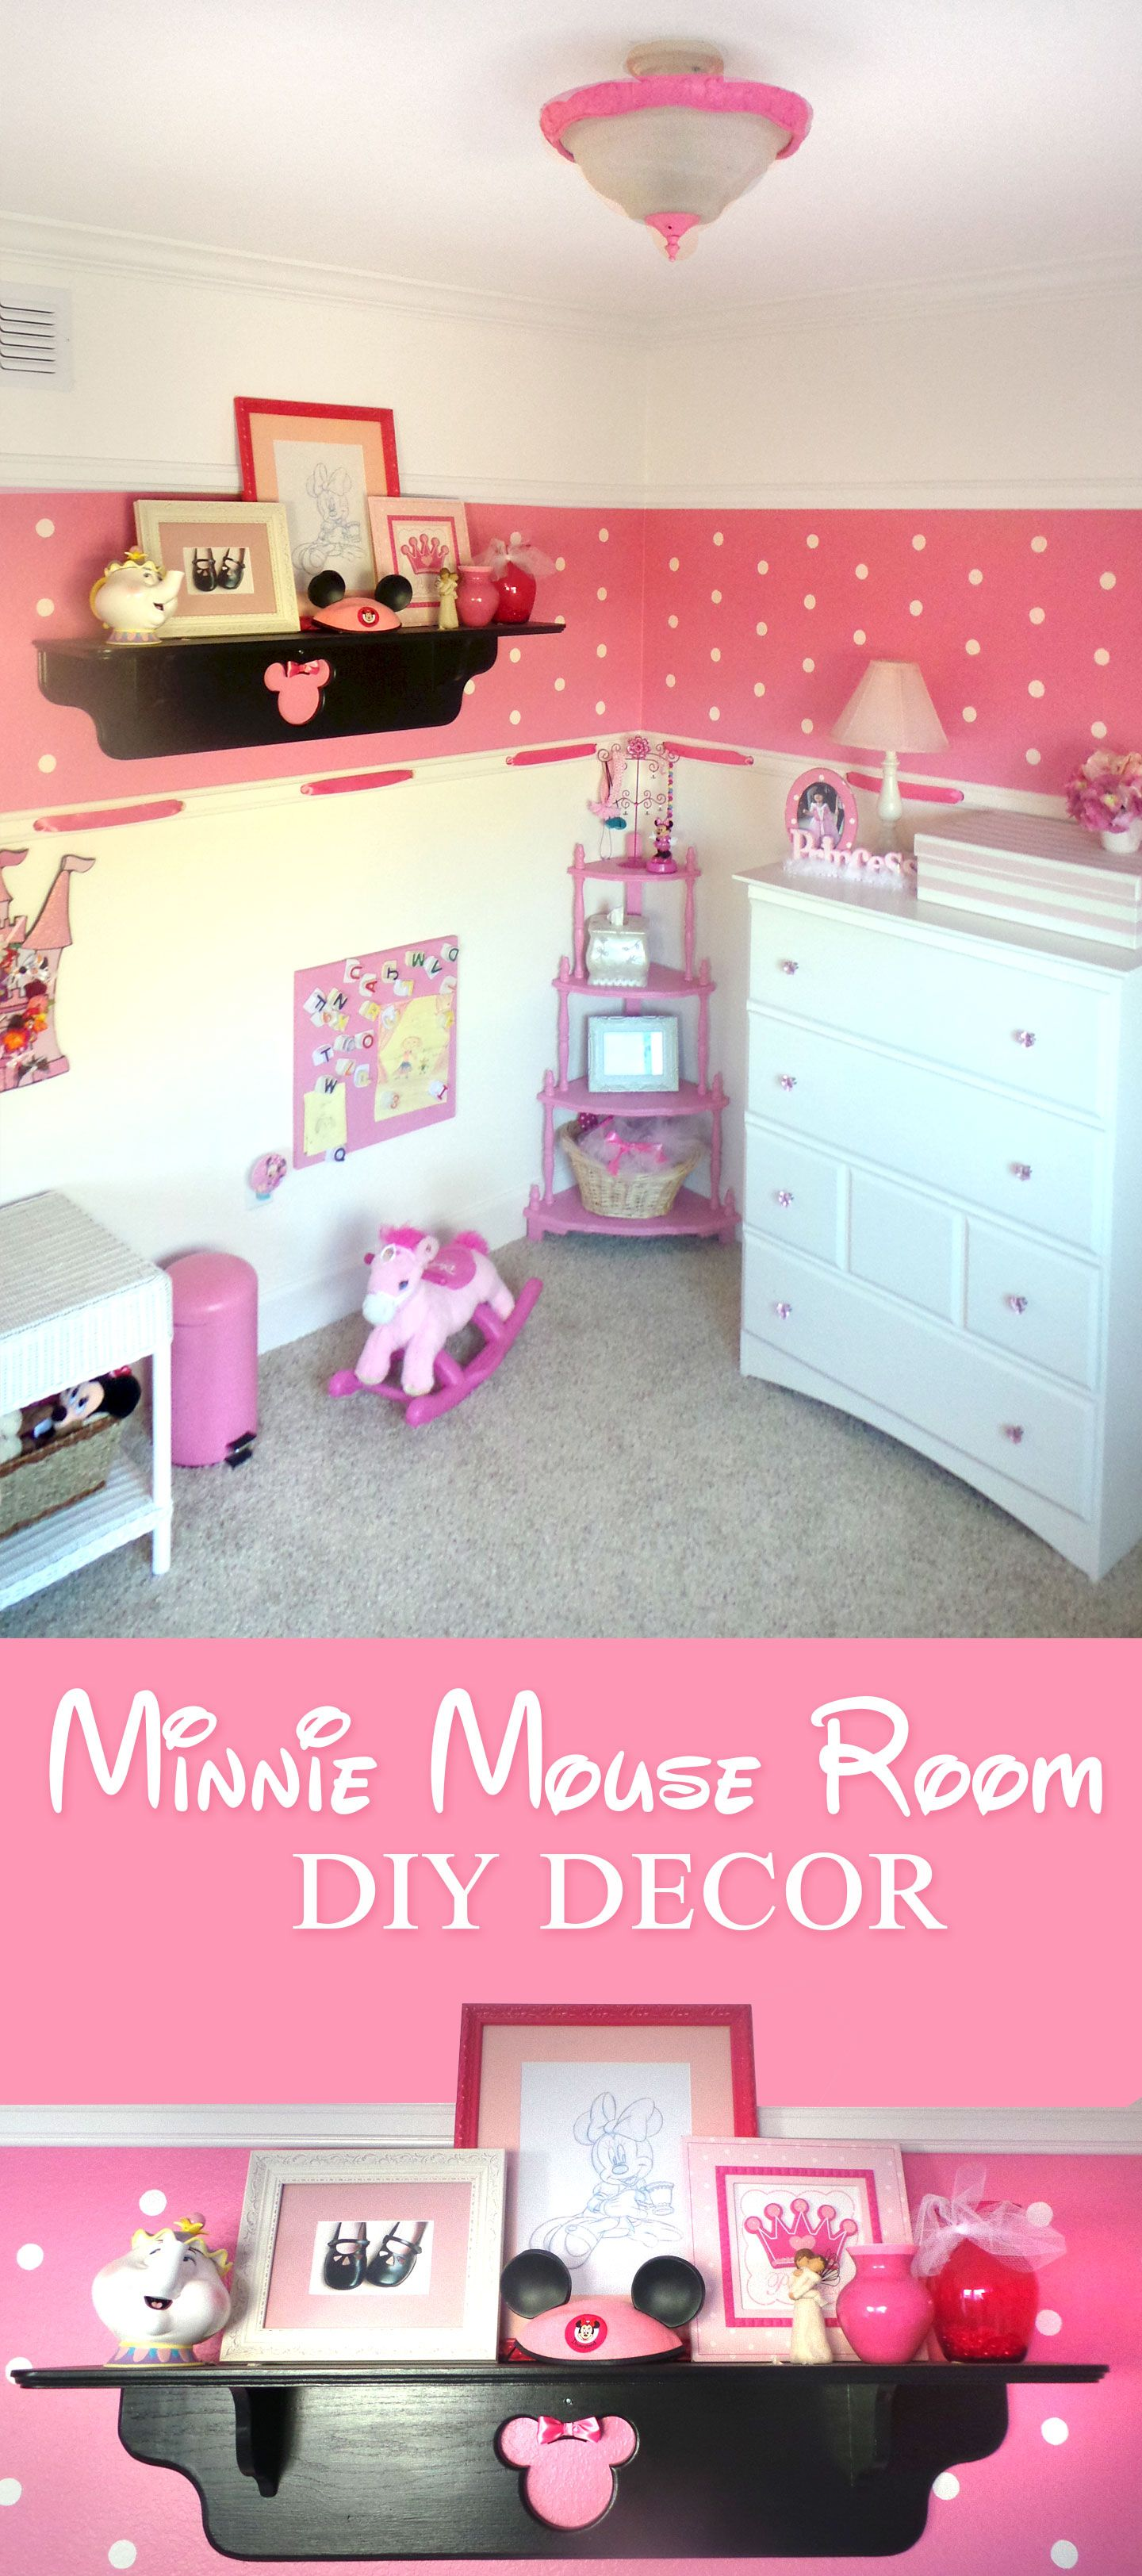 Minnie Mouse Room Diy Decor Minnie Mouse Room Decor Kids Room